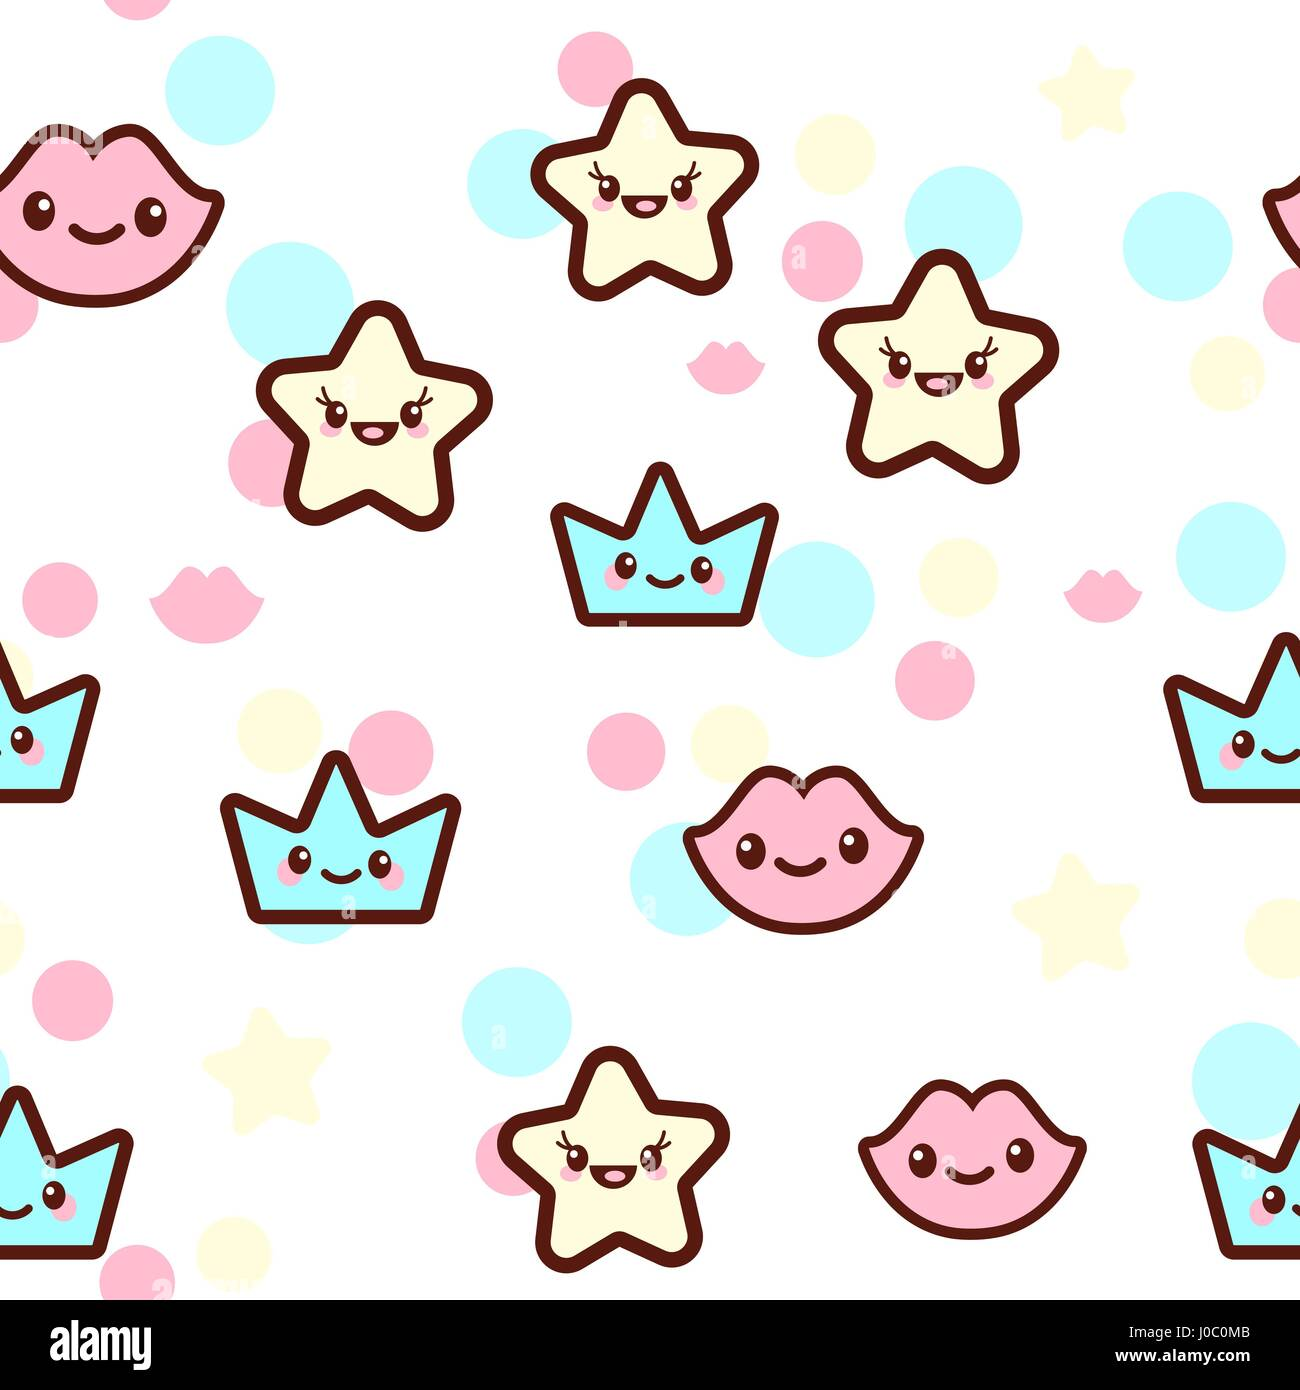 Vector illustration of the stars, lips and crowns with the funny faces seamless pattern. Trendy Kawaii emoticons - Stock Vector